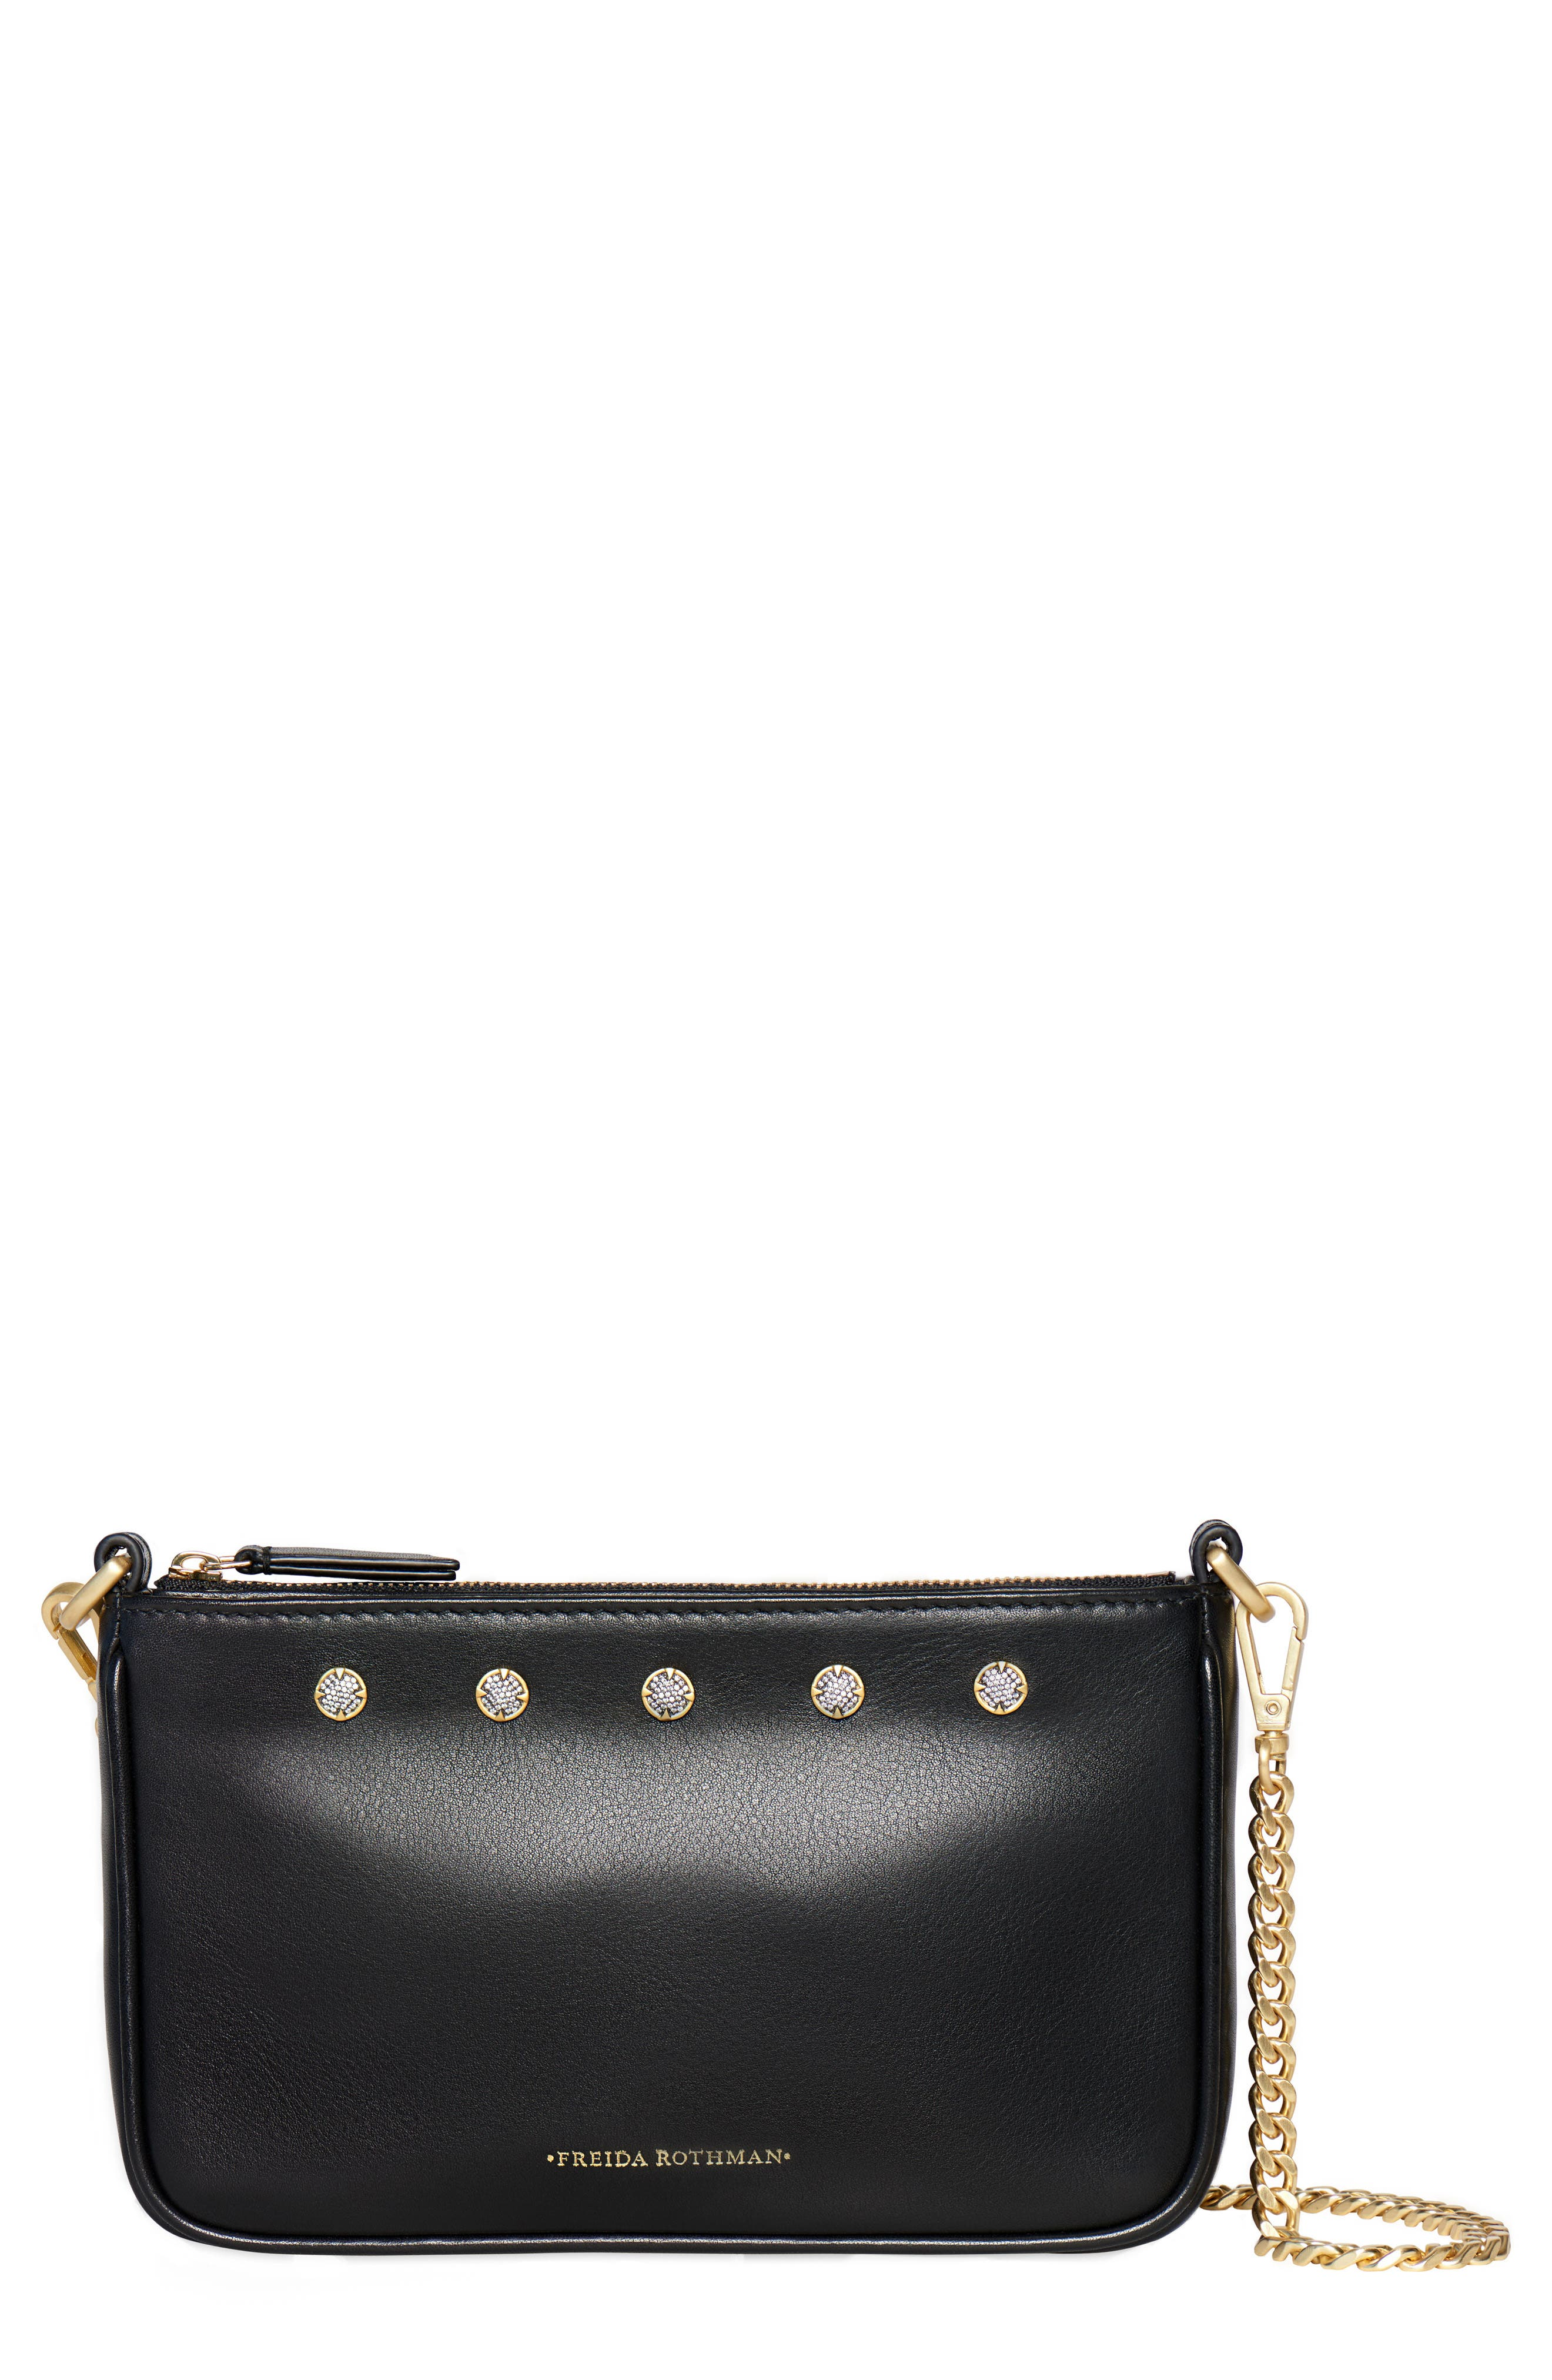 Mini Mercer Leather Shoulder Bag,                             Main thumbnail 1, color,                             BLACK